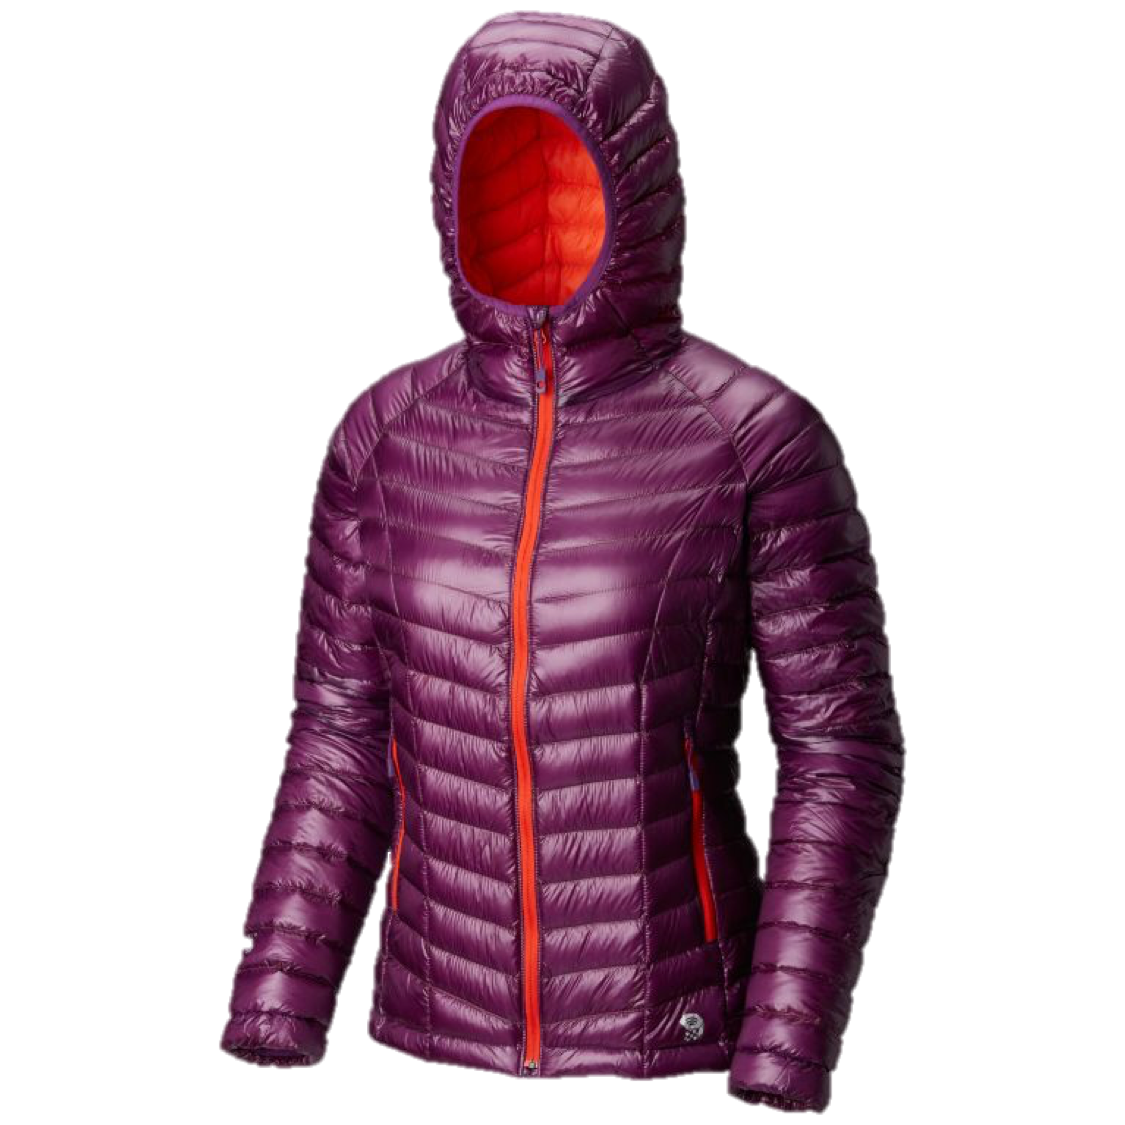 puffer jacket - Montbell Frost Line ParkaRead why→